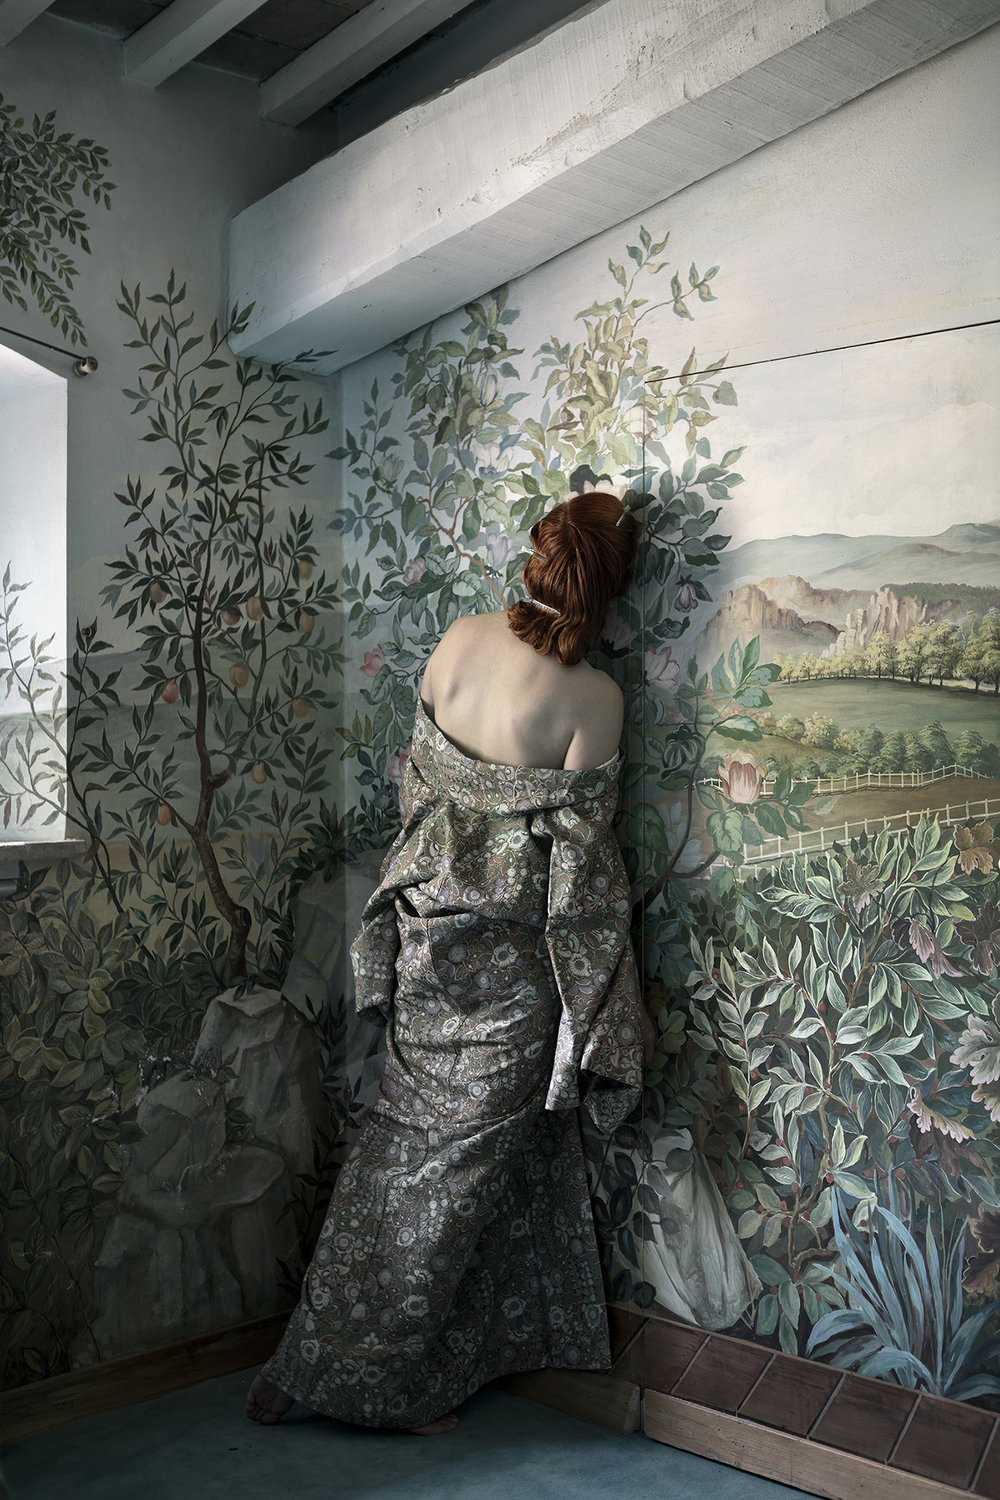 The Flower Room © Anja Niemi _ The Little Black Gallery.jpg